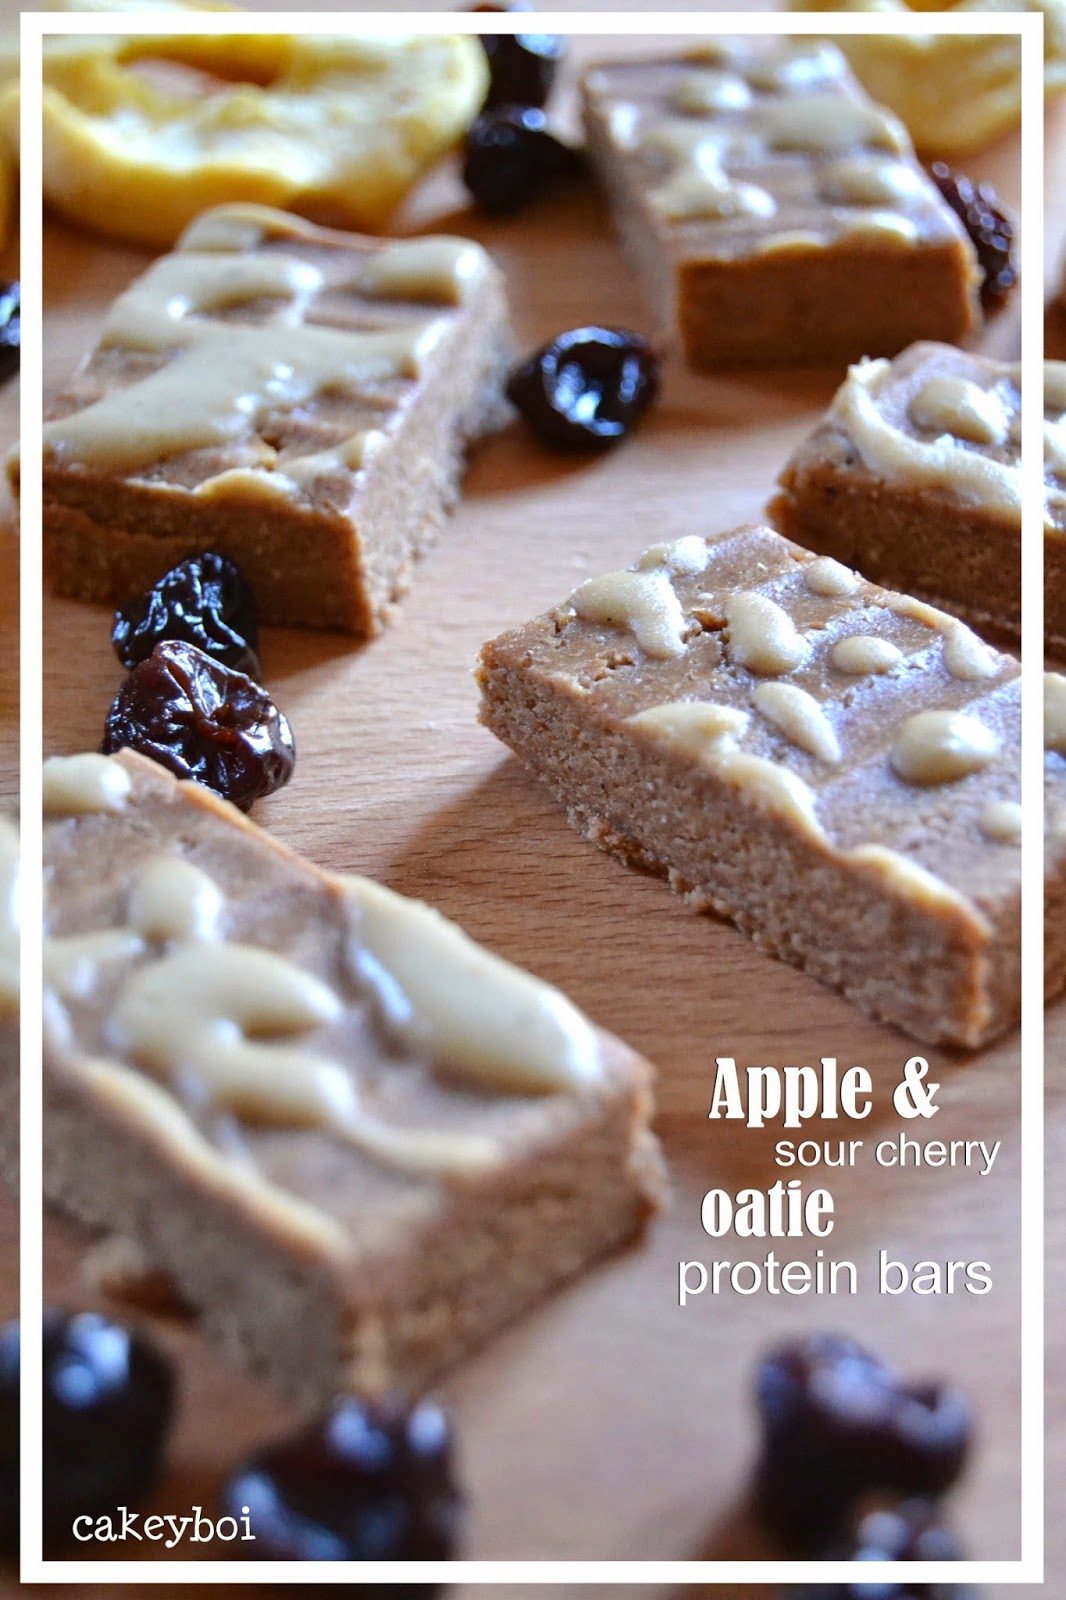 Apple and Sour Cherry Oatie Protein Bars